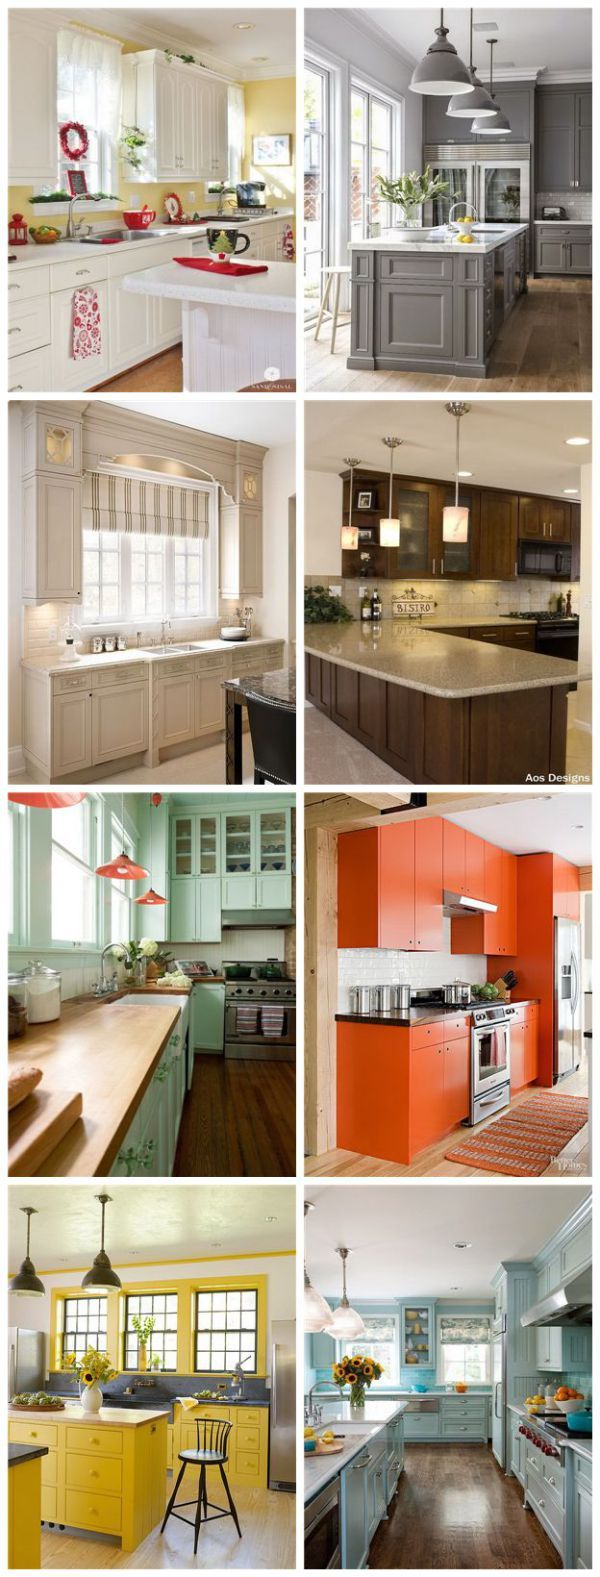 Best 25+ Popular Kitchen Colors Ideas On Pinterest   Wood Tile Kitchen,  Cabinets And Beautiful Kitchen Designs